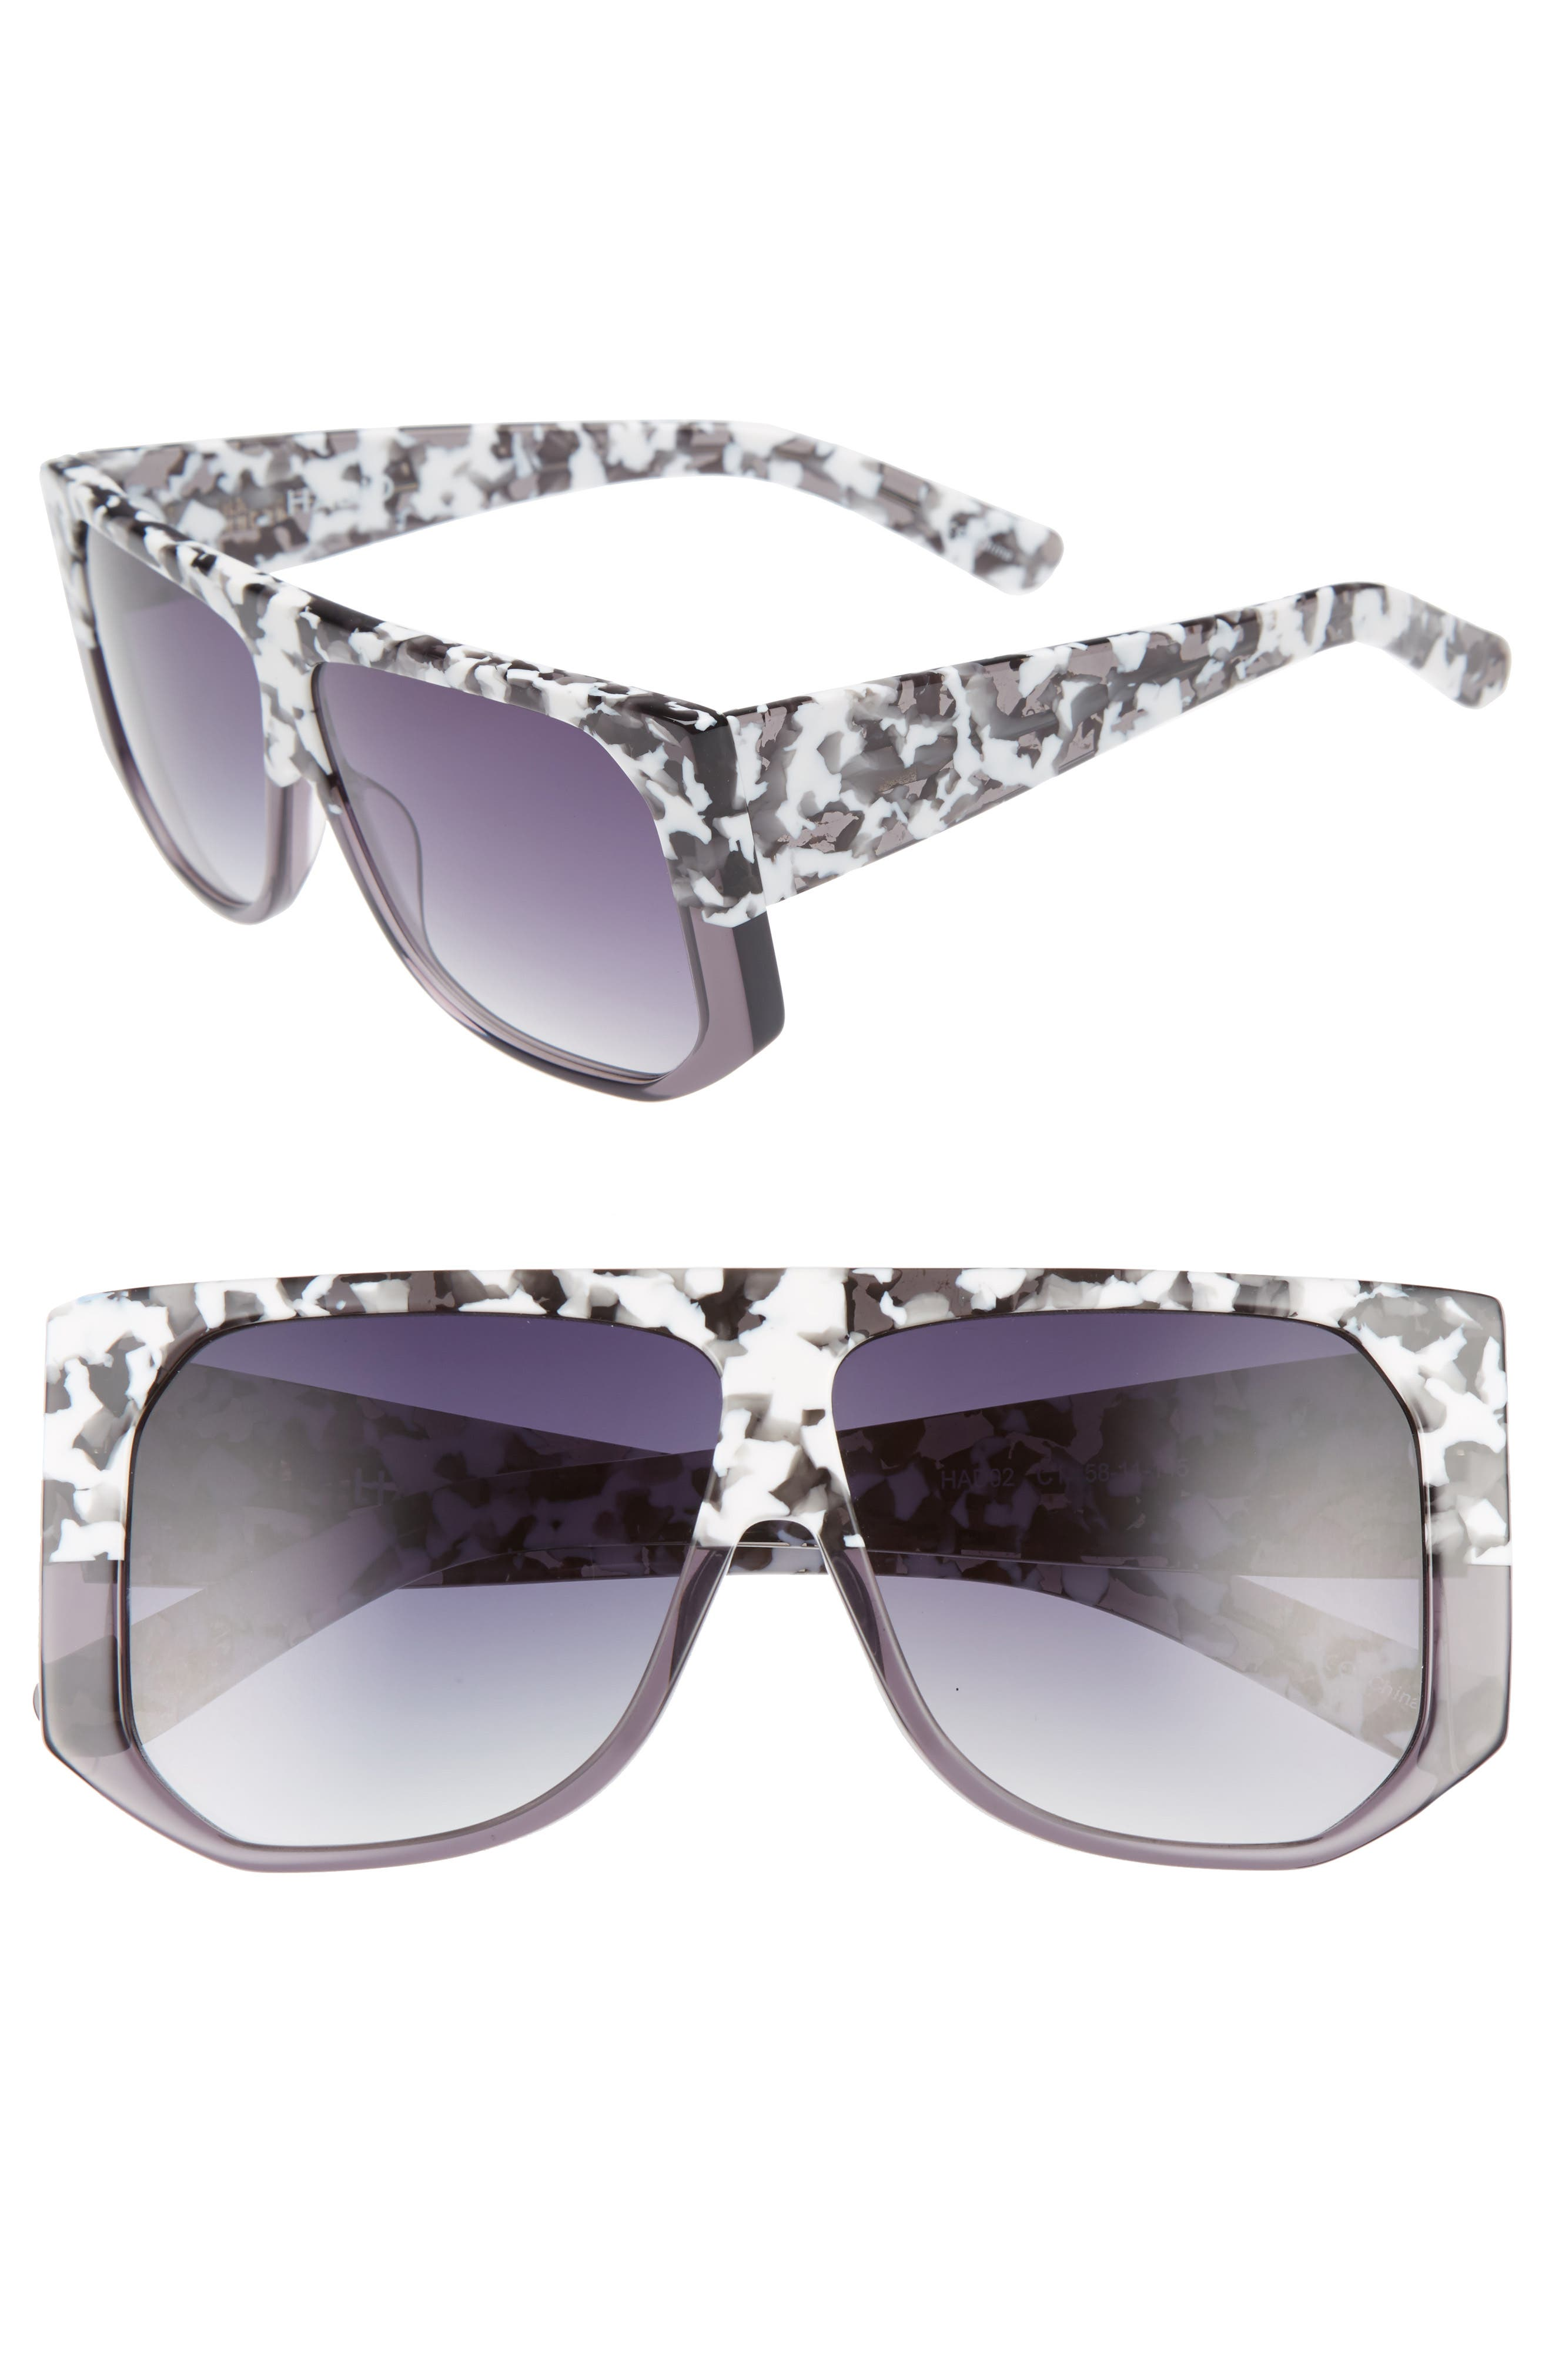 Frequent Flyer 58mm Sunglasses,                             Main thumbnail 1, color,                             WHITE CAMO